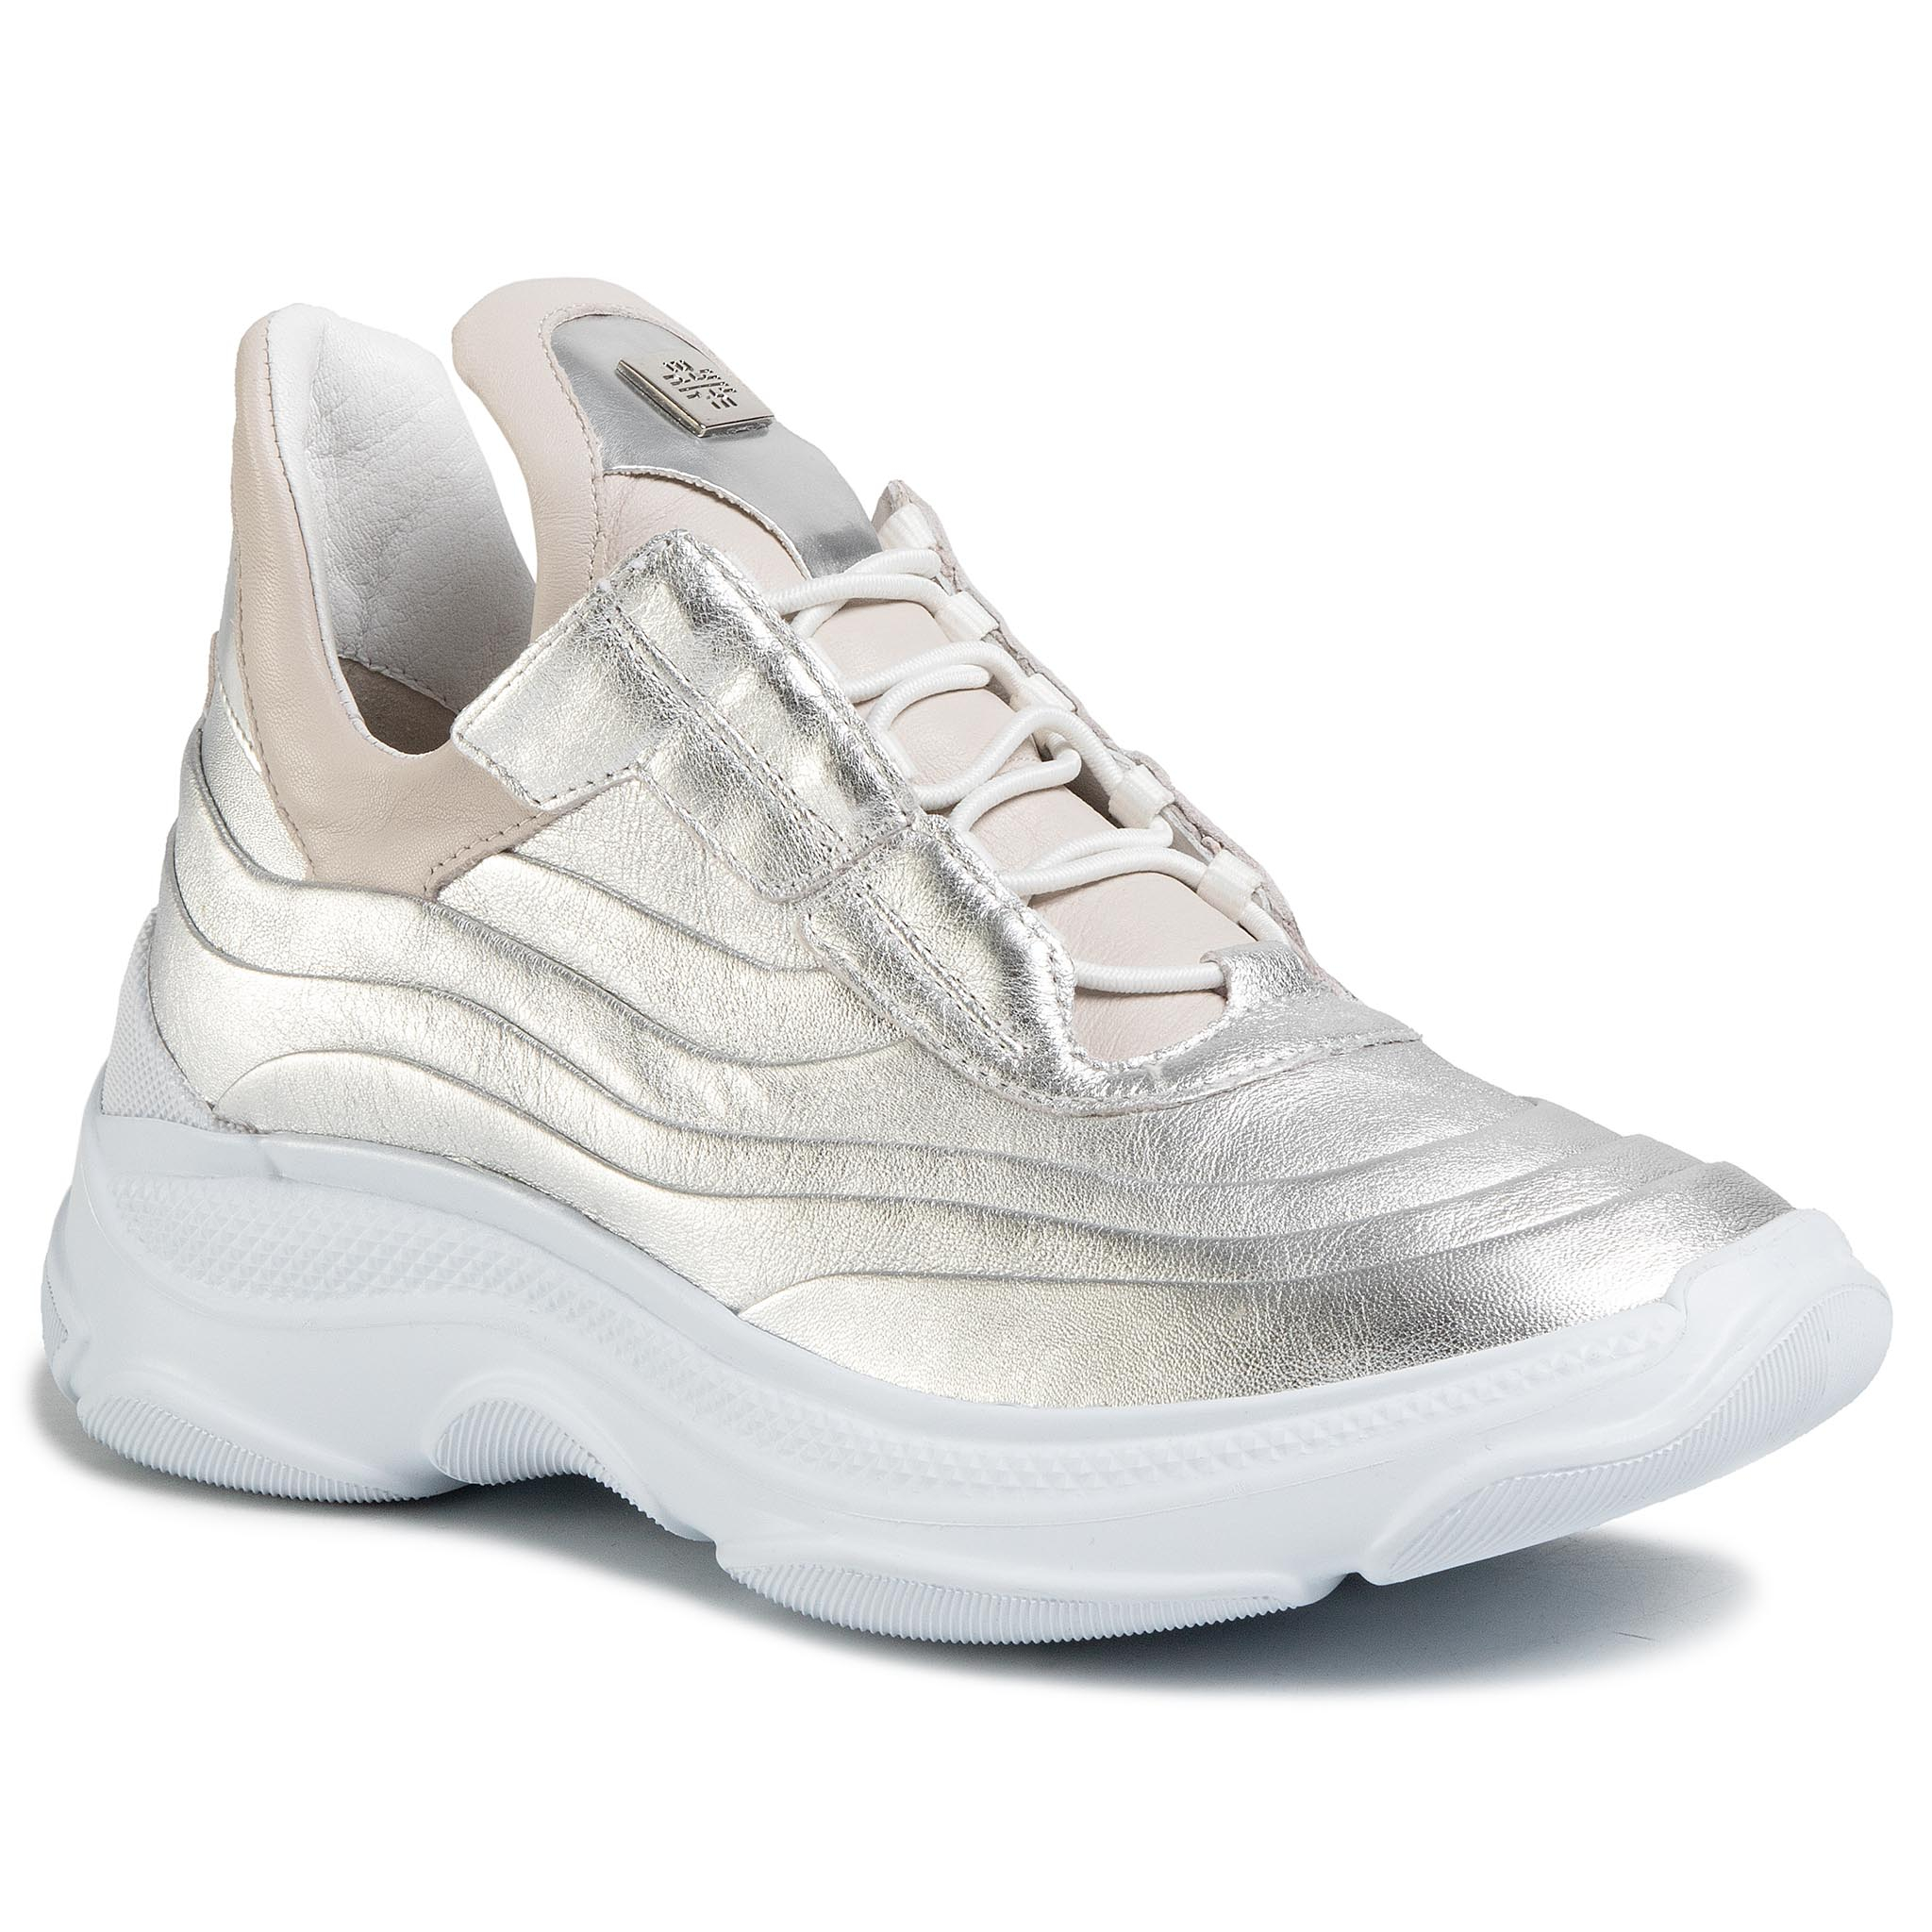 Sneakers HÖGL - 9-105316 Silver 7600